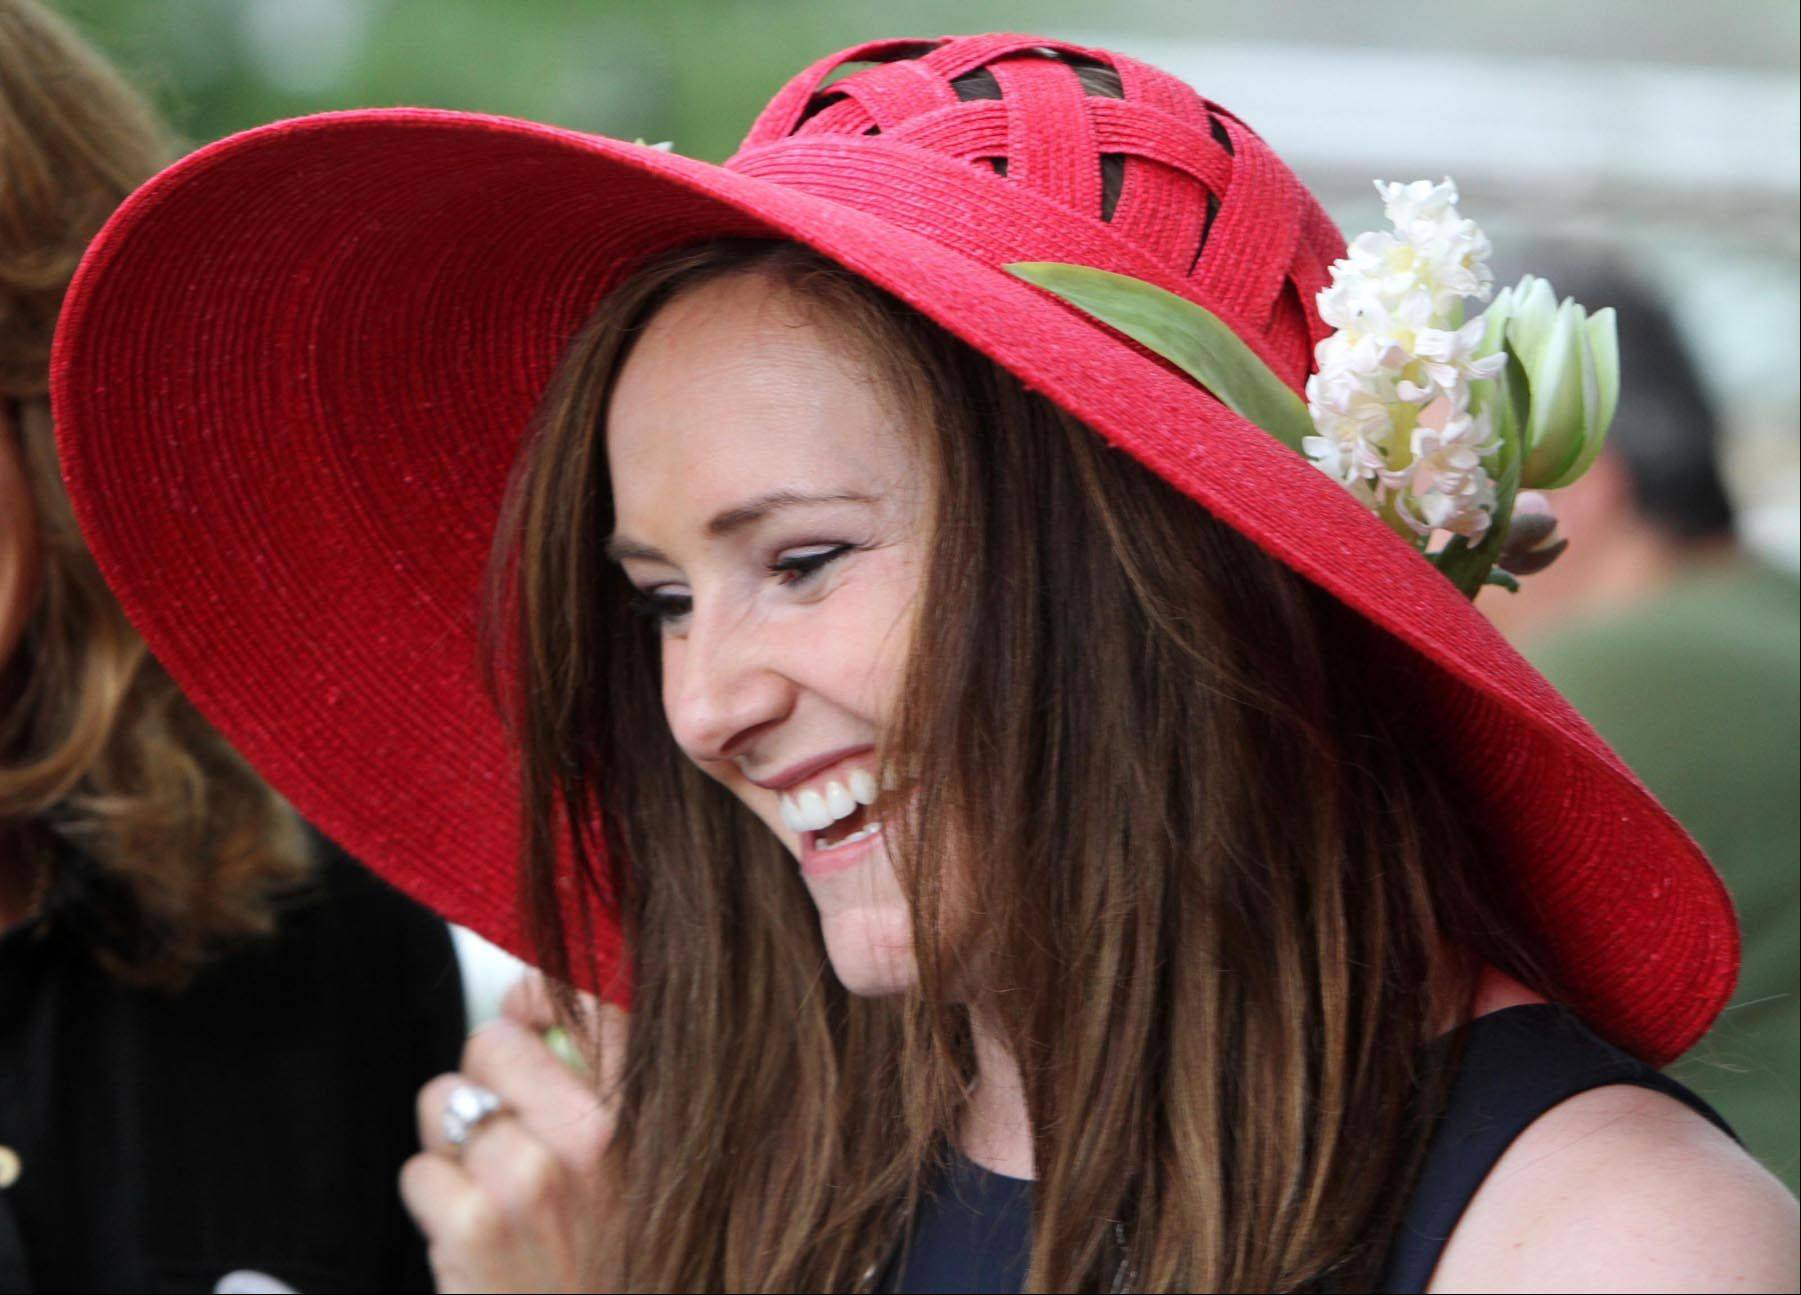 Cara McKeighan of Naperville wore a bright red hat while watching the Arlington Million at Arlington Park on Saturday.